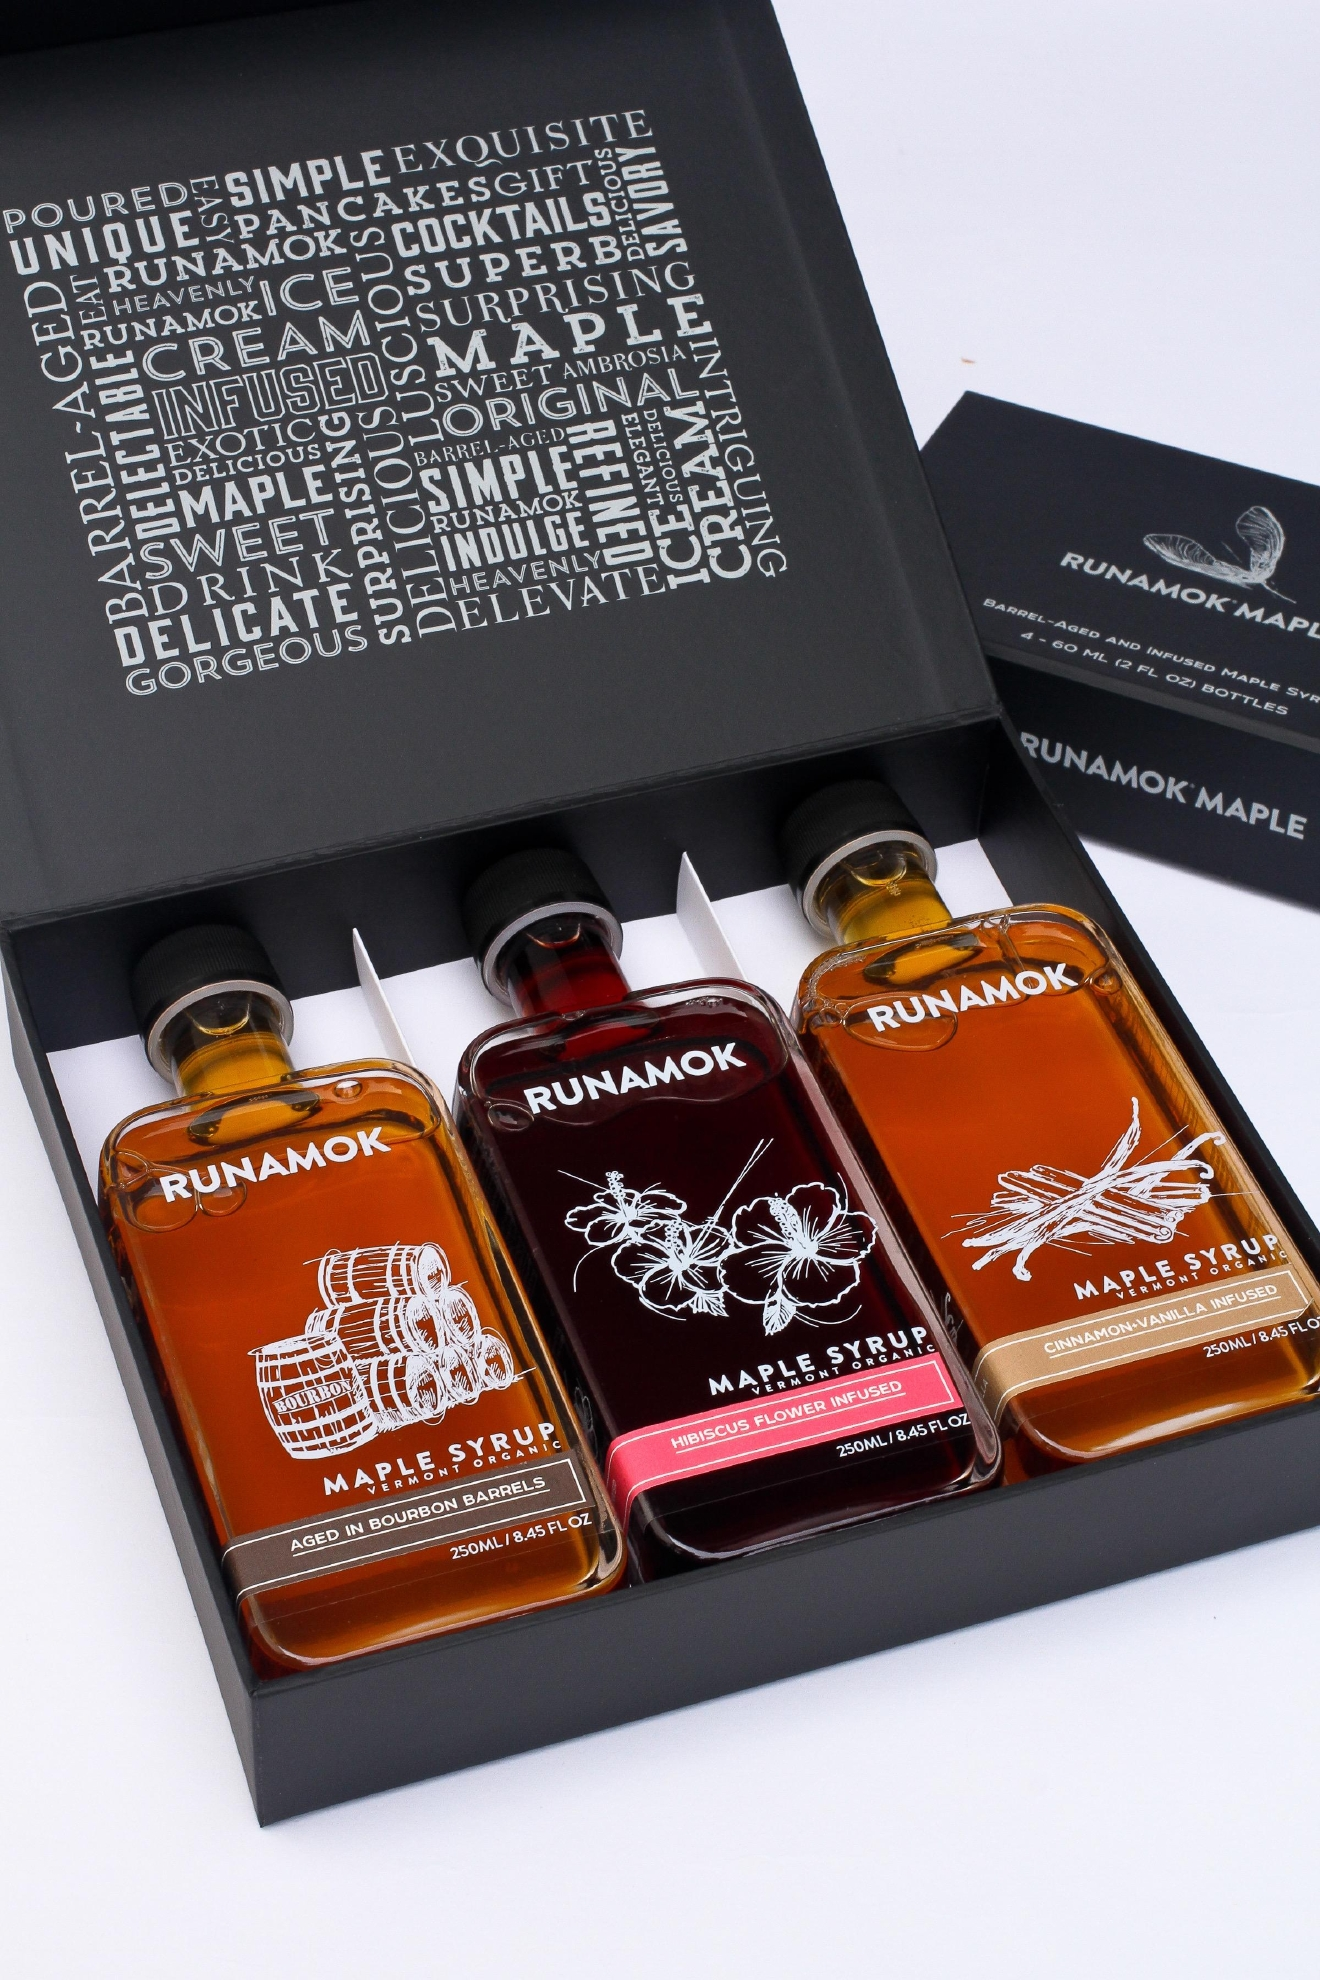 Runamok Bourbon Barrel-Aged Maple Syrup (Courtesy: Runamok Maple)